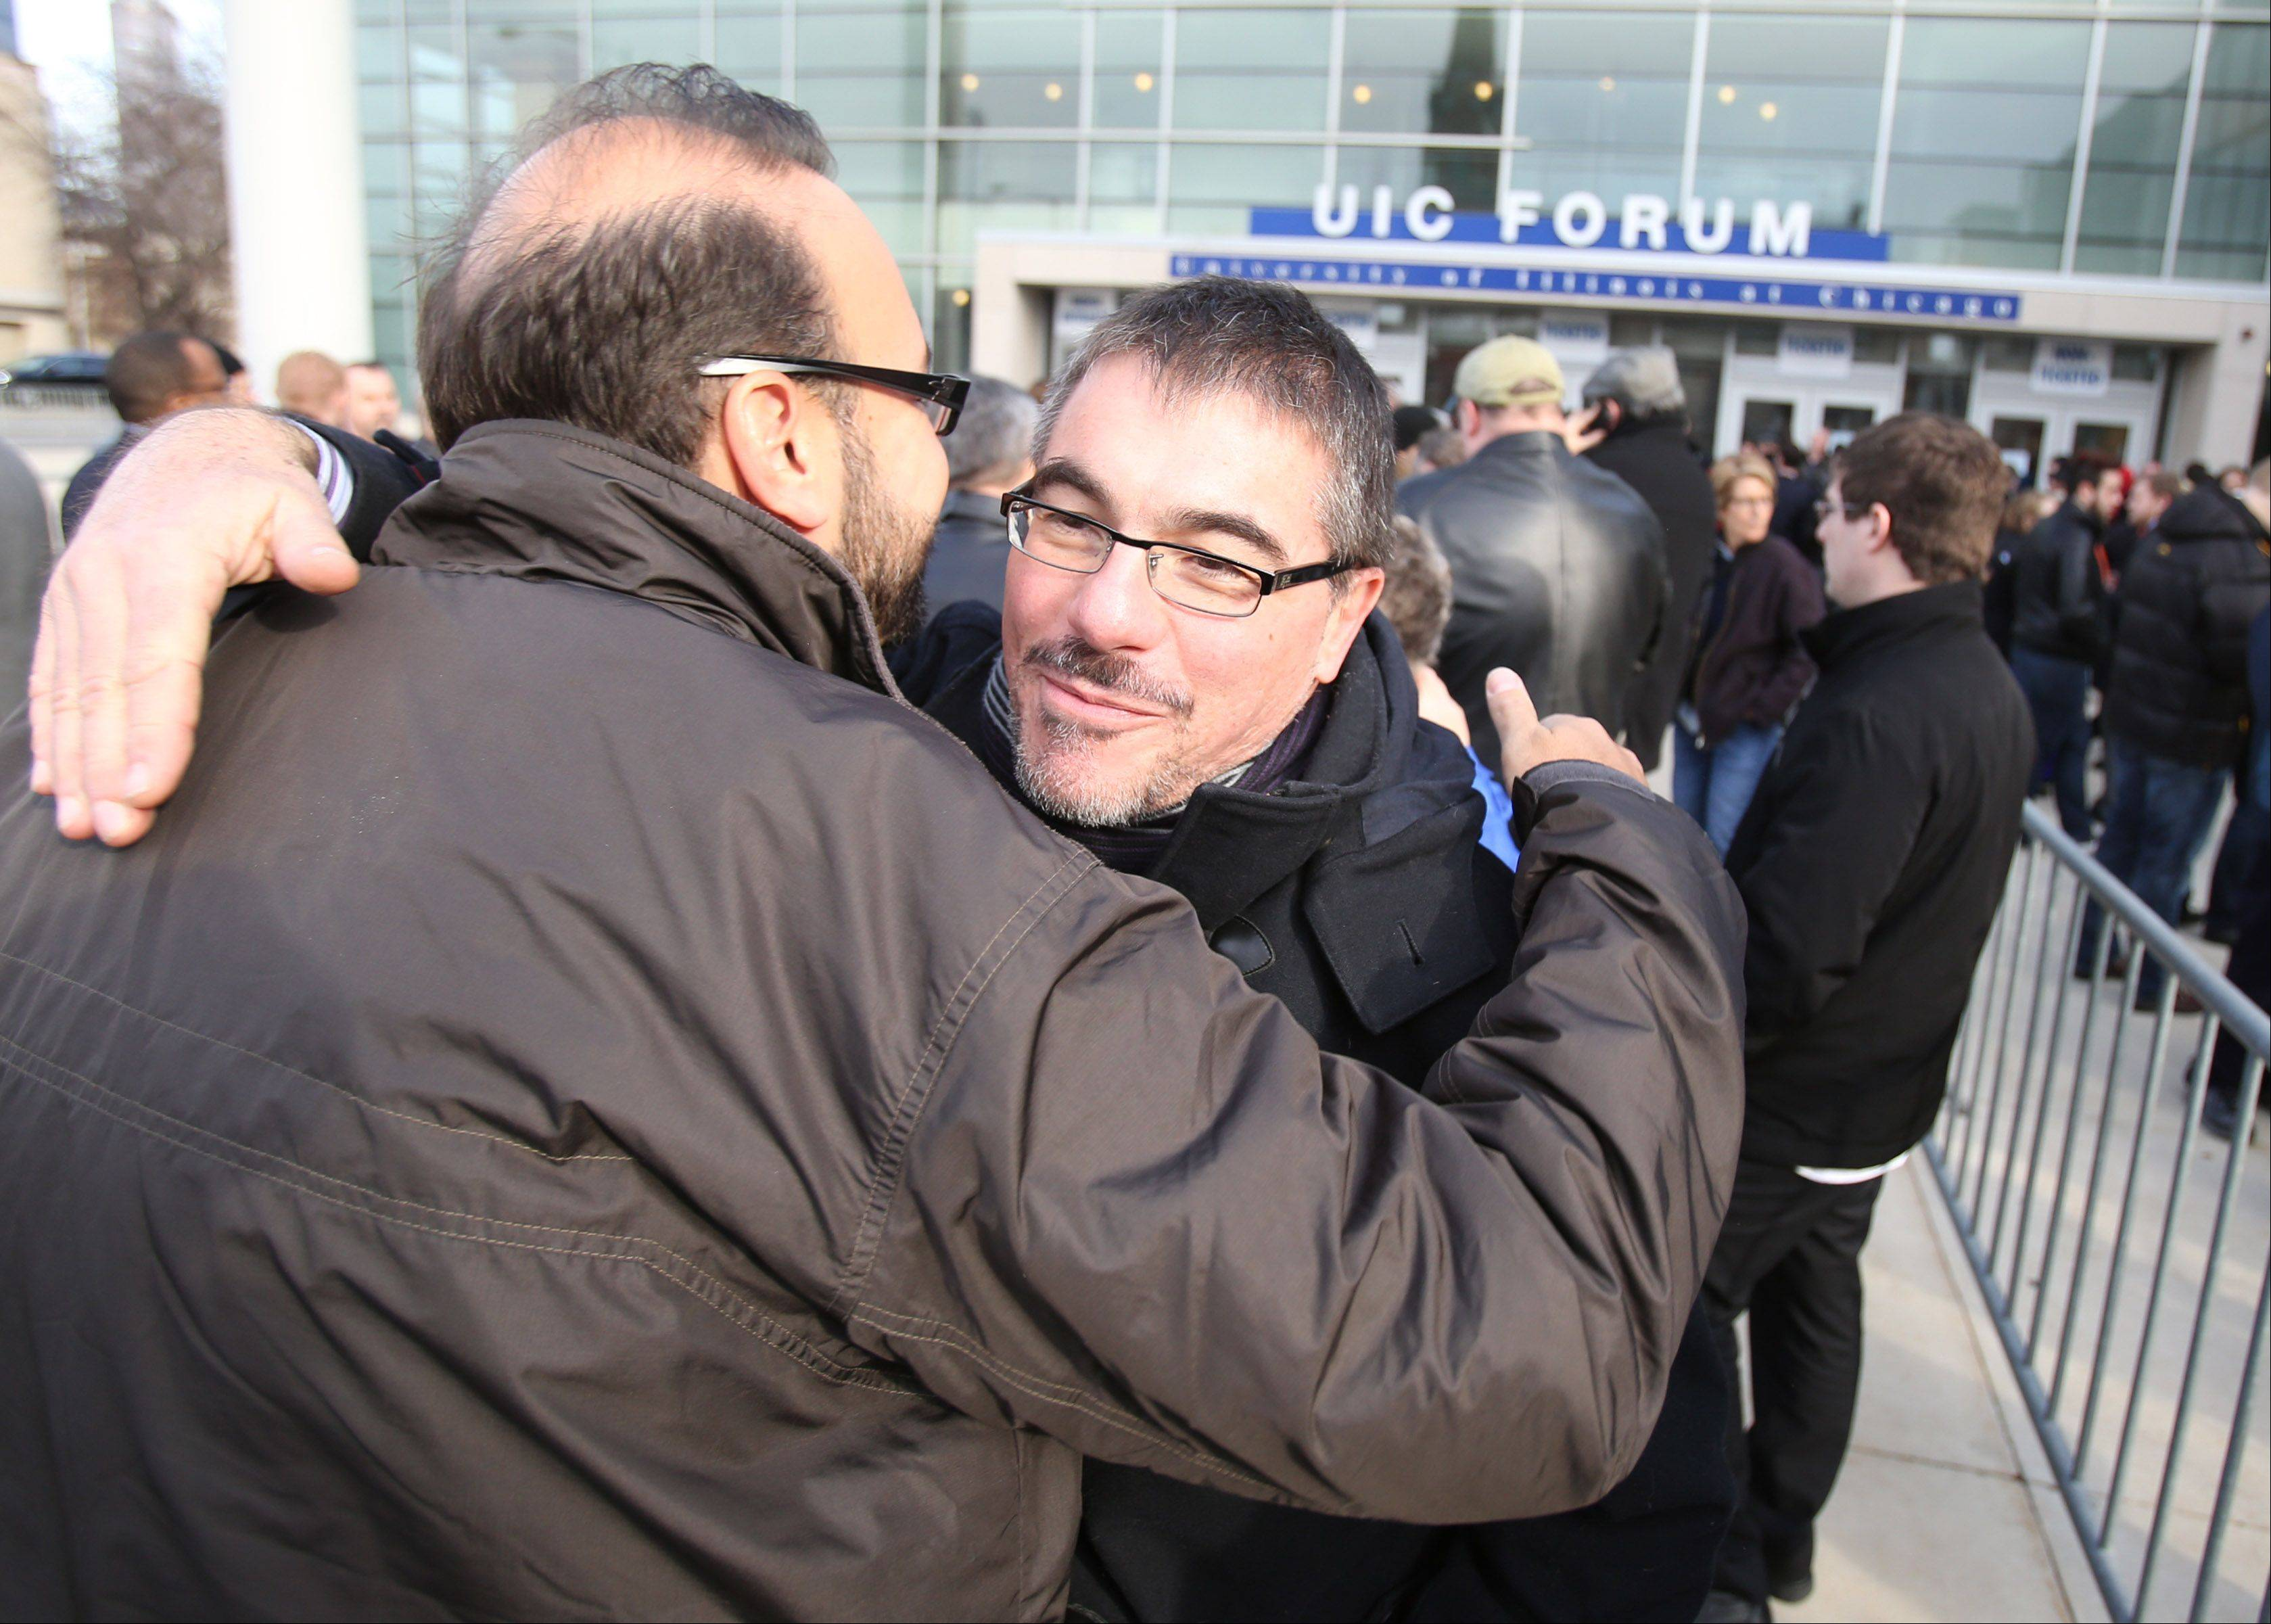 Trevor Slom of Chicago ,right, gets a hug from friend Jeffrey Ciolino of Chicago in front of the UIC Forum before the event.